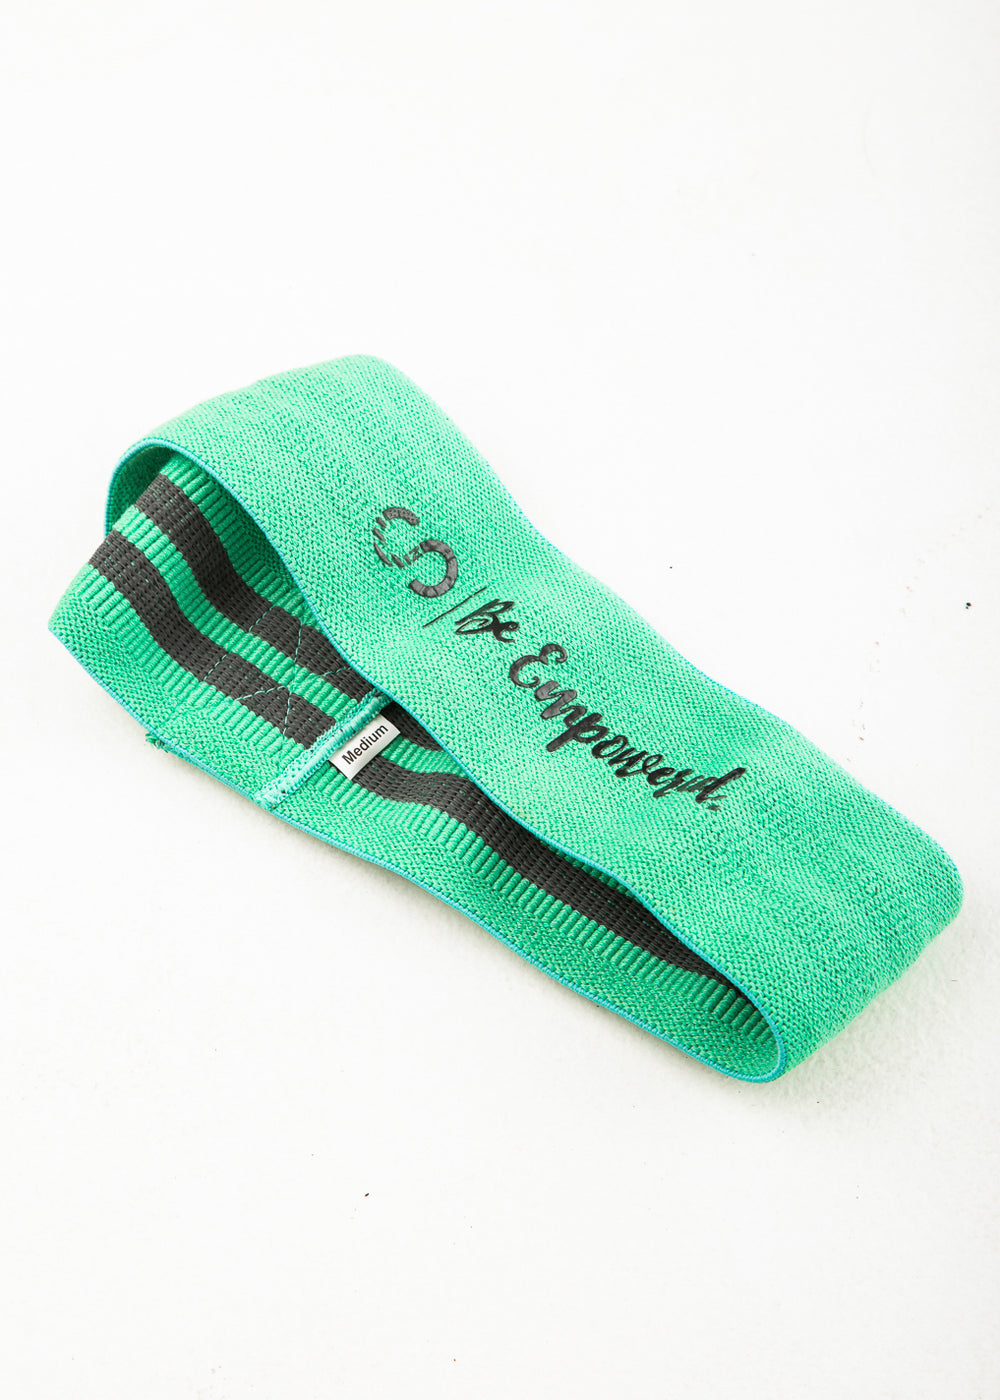 """Glute"" Band - MEDIUM Tension - Teal"